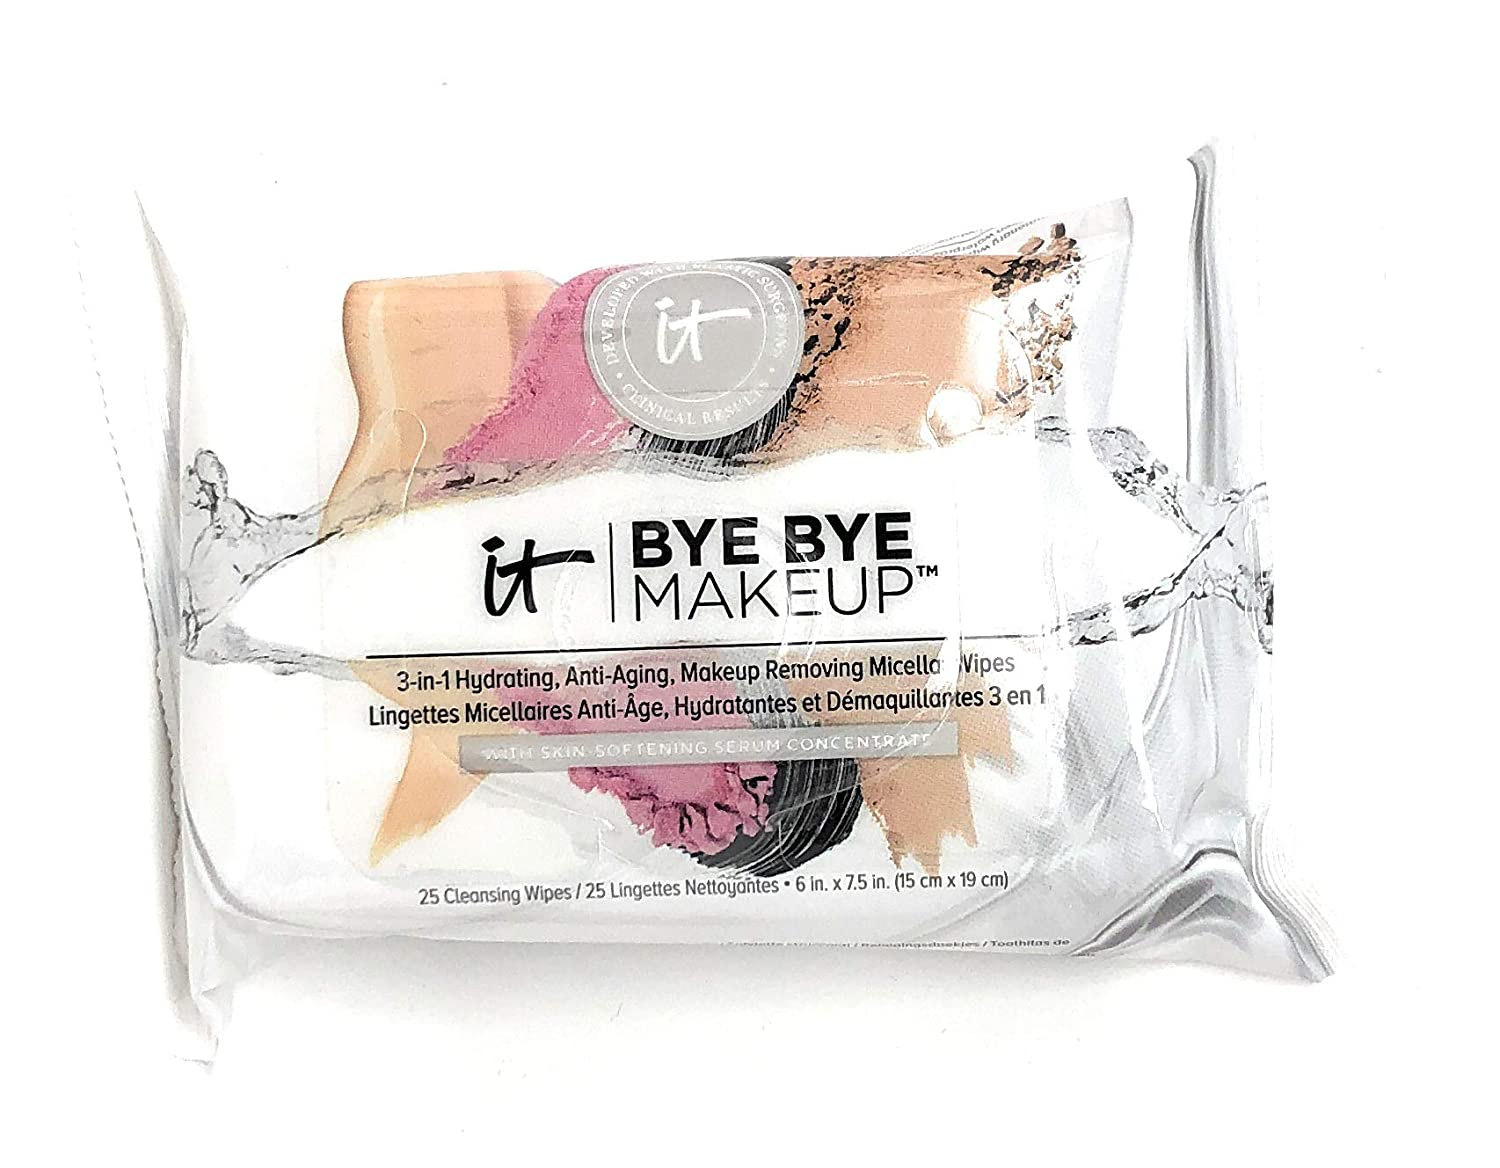 It Cosmetics Bye Bye Makeup 3-In-1 Hydrating, Anti-Aging, Makeup Removing Micellar Wipes 25 ct